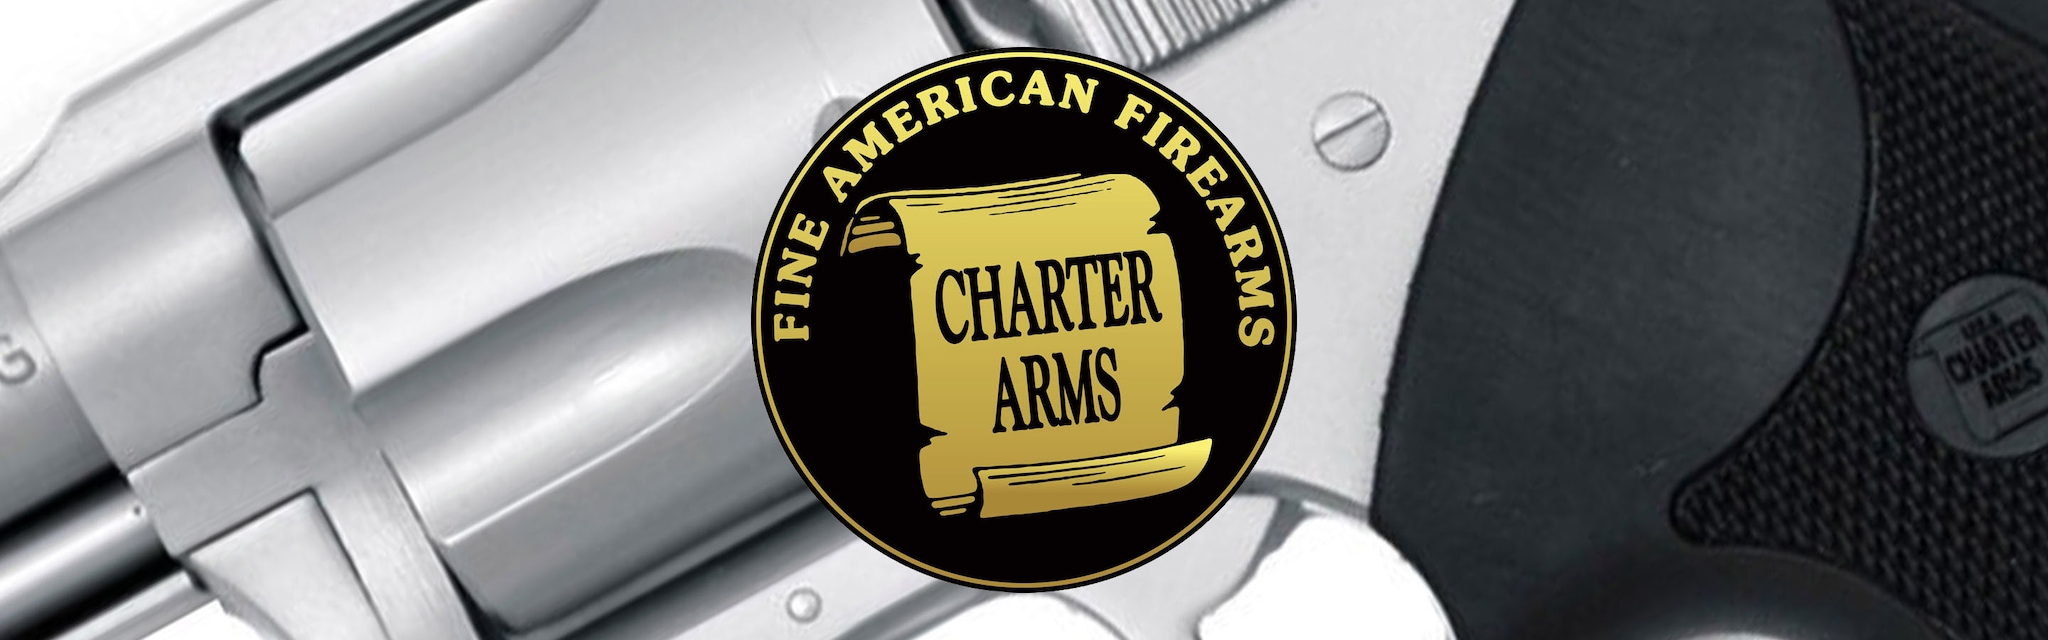 Charter Arms Brand Page